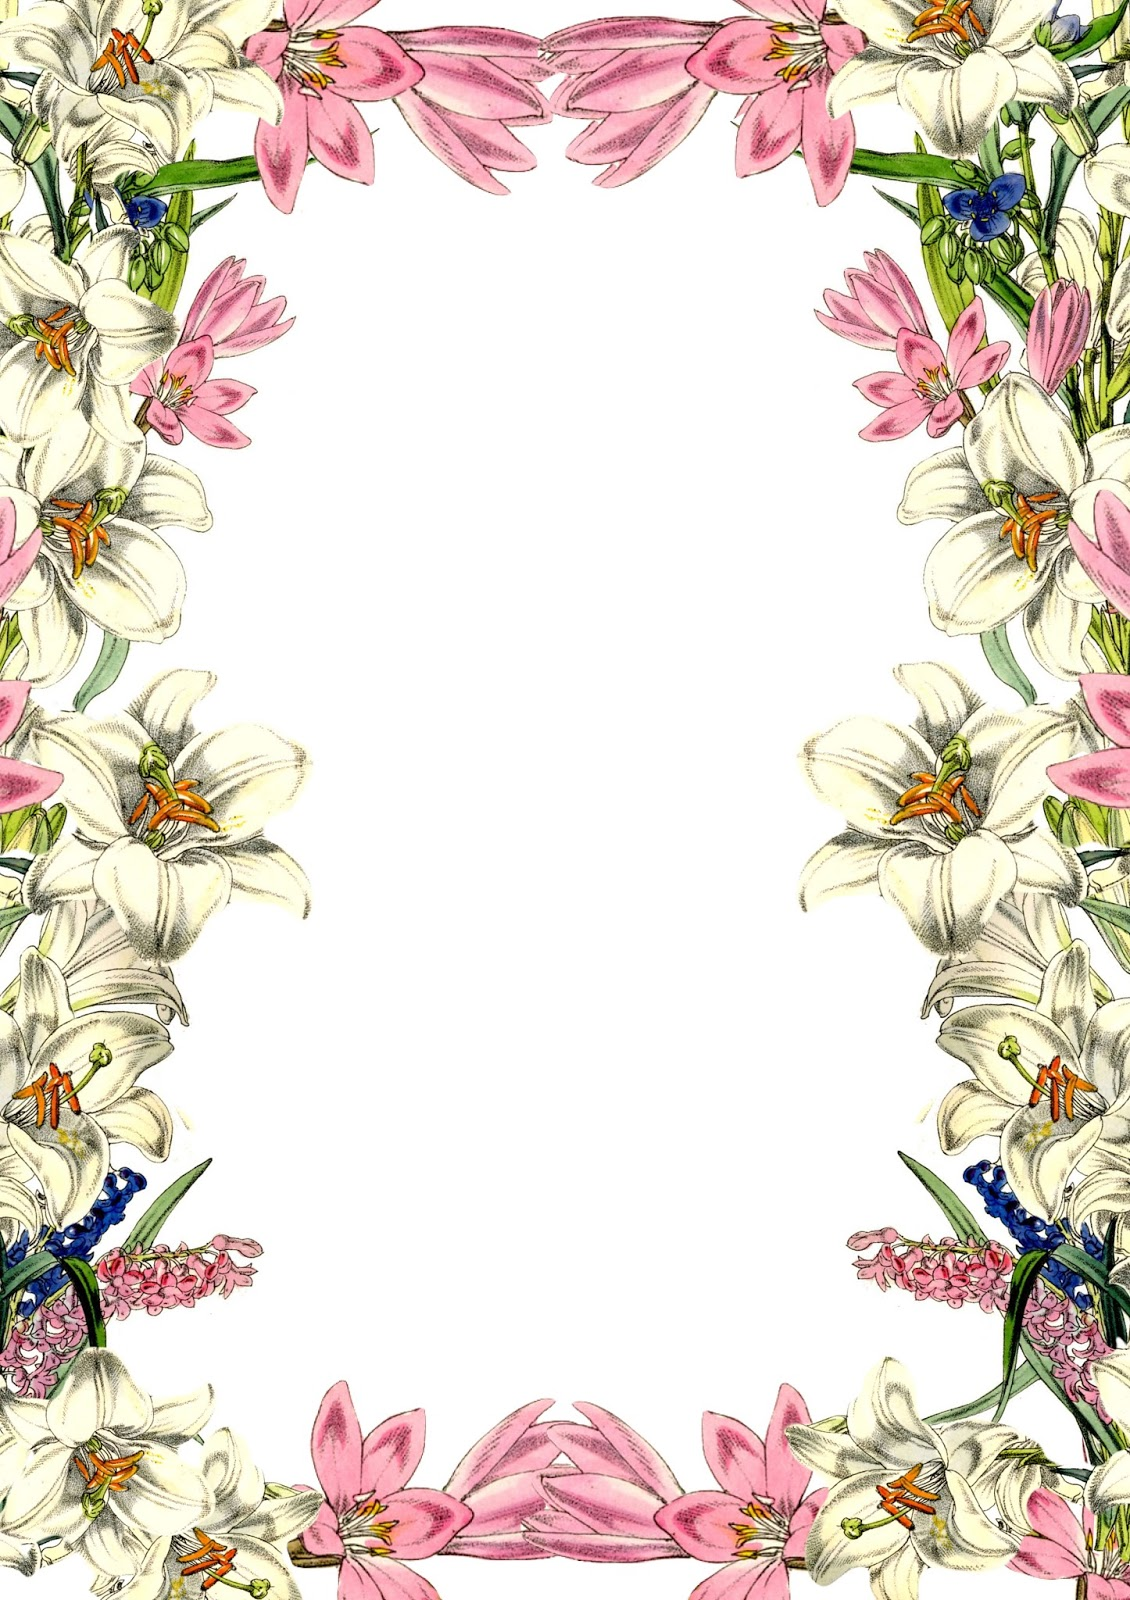 Vintage Flower Border Gaya Vintage Home Design 7